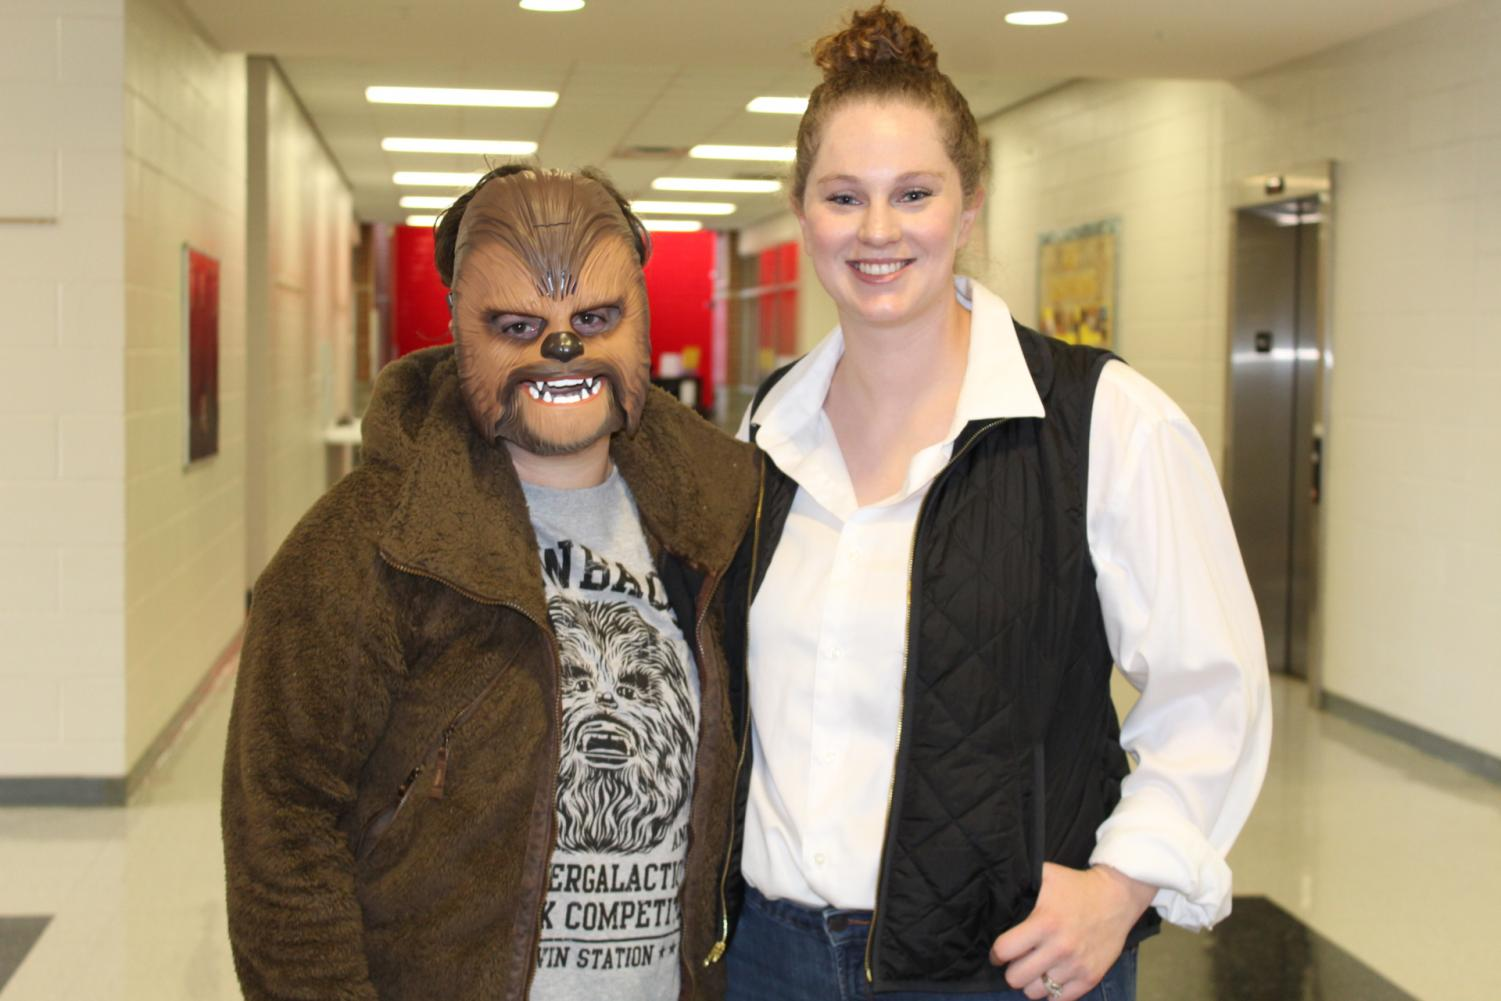 Mrs.+Hubrel+and+Mrs.+Fenix+dress+as+Han+Solo+and+Chewbacca+for+Dynamic+Duo+day.%0A